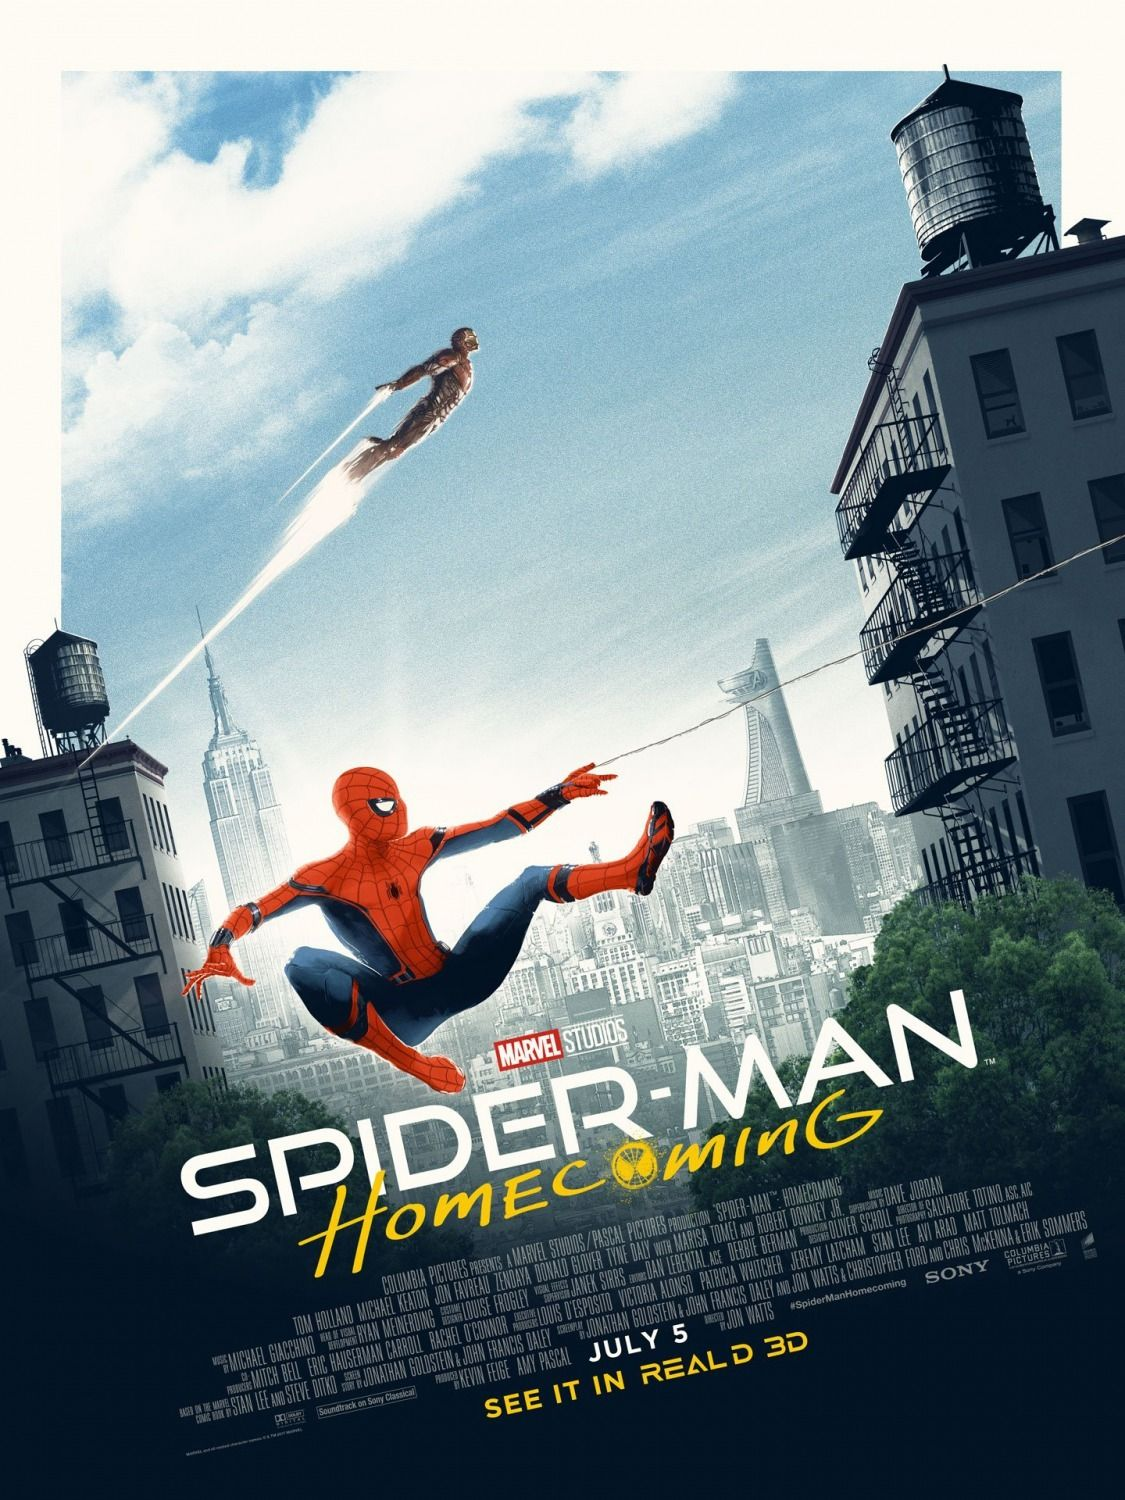 spiderman homecoming poster high quality HD printable wallpapers iron man and spiderman ship scene